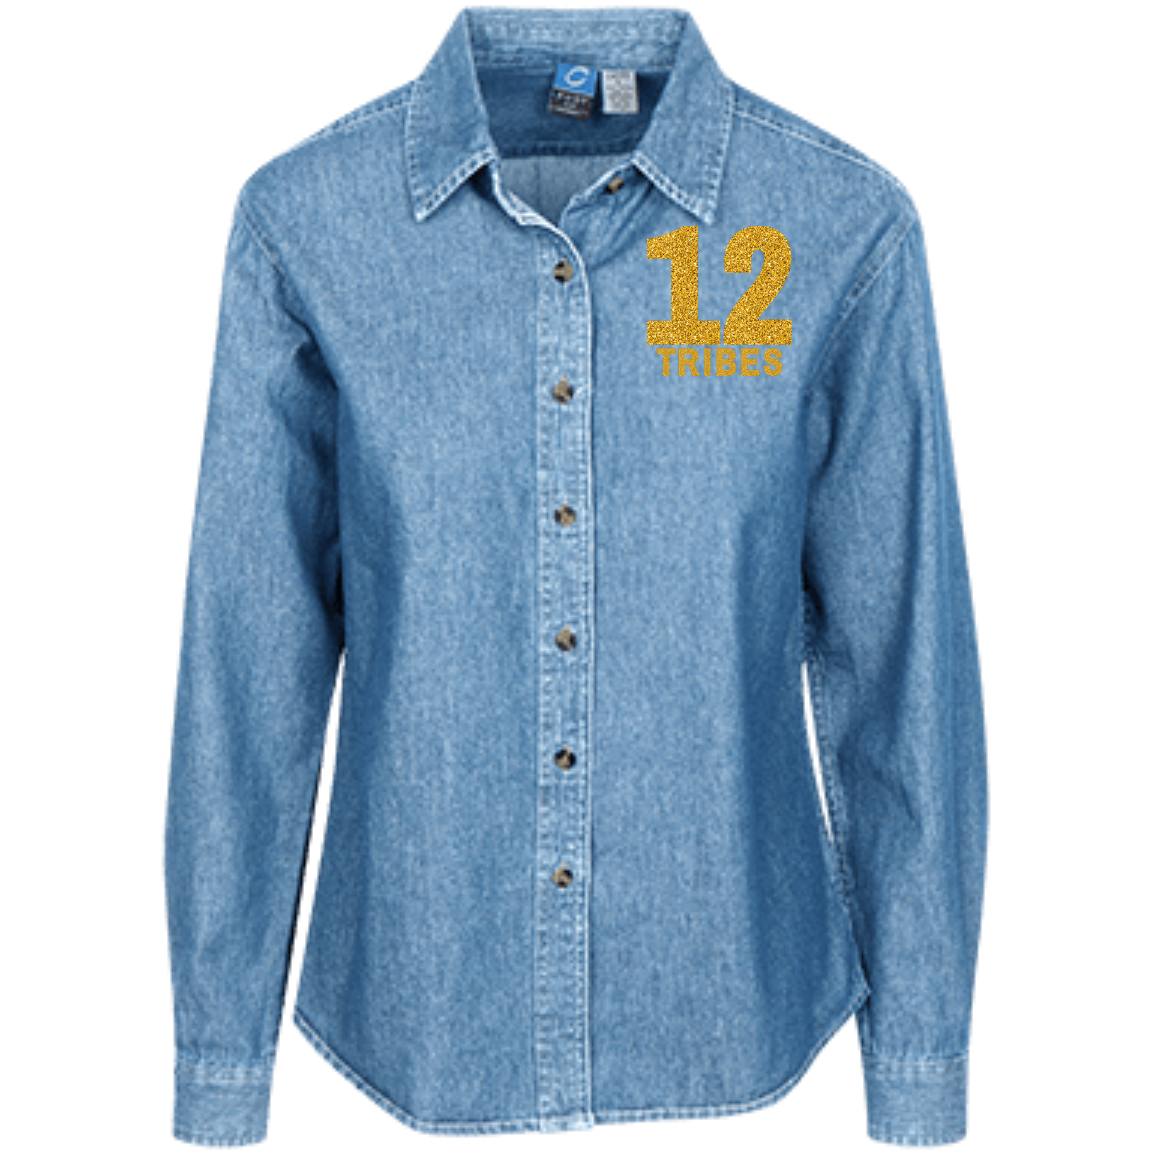 JF 12 tribes LSP10 Women's LS Denim Shirt